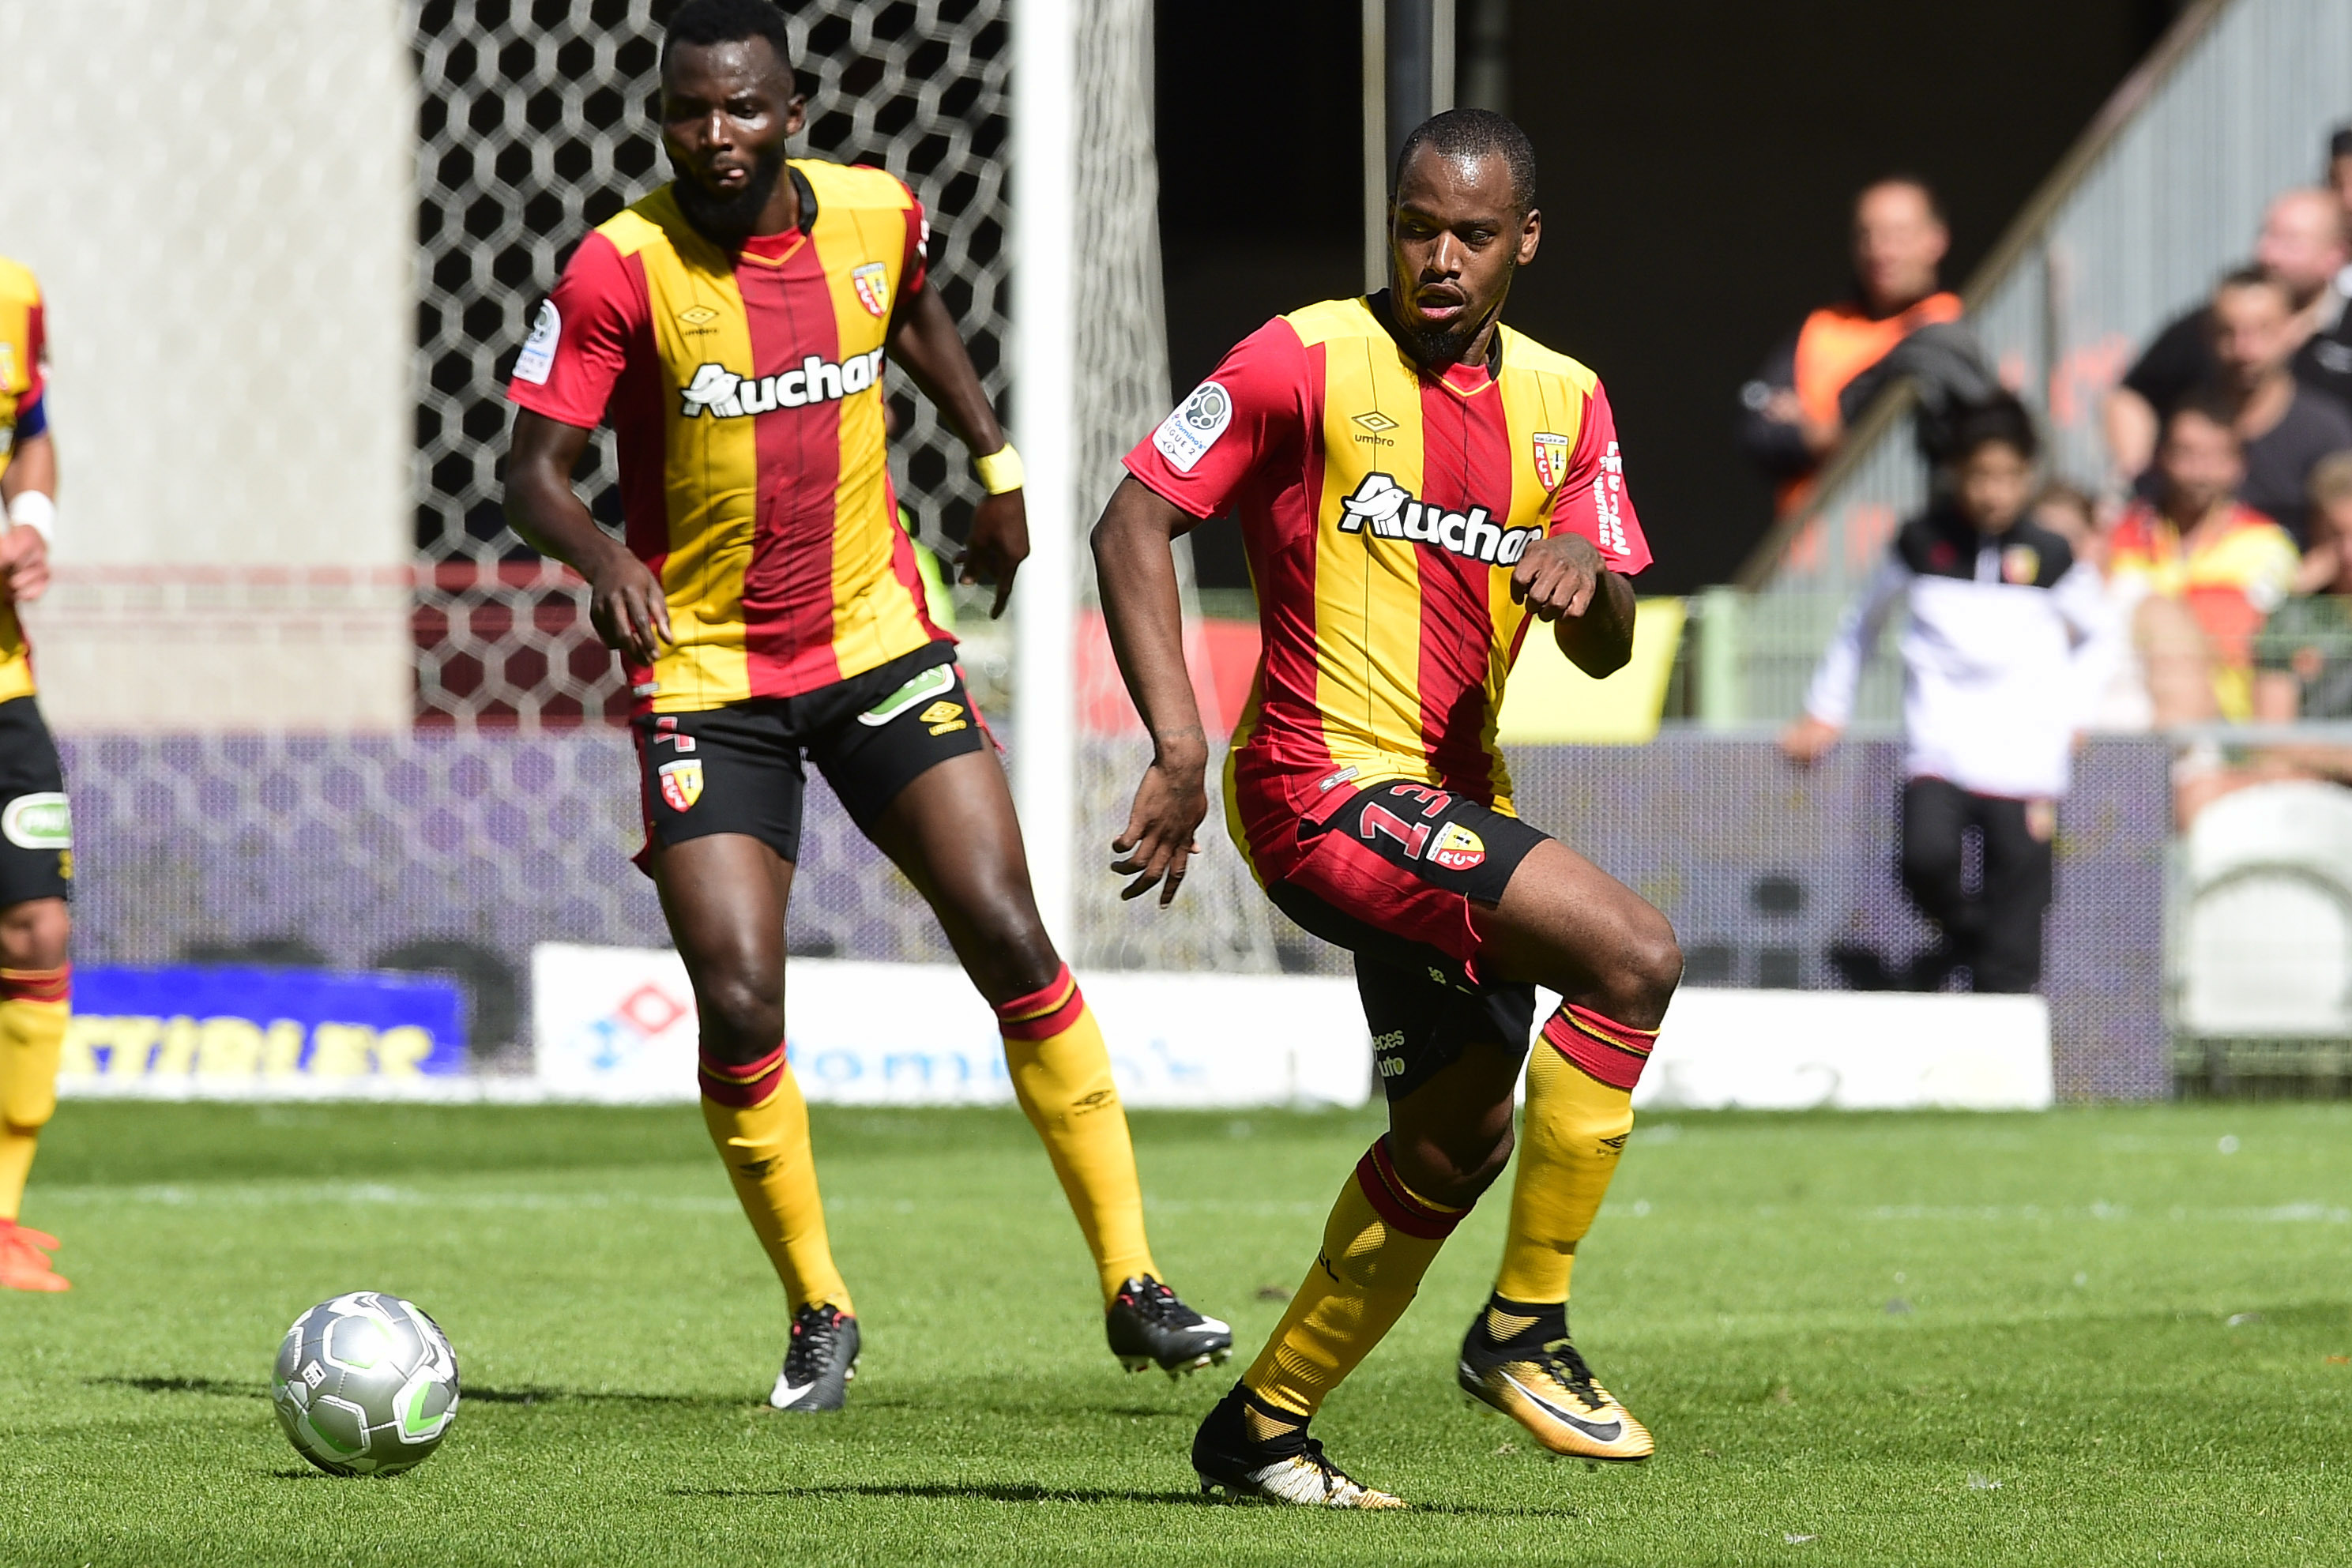 Football - Ligue 2 - Ligue 2 : Lens-Reims en direct